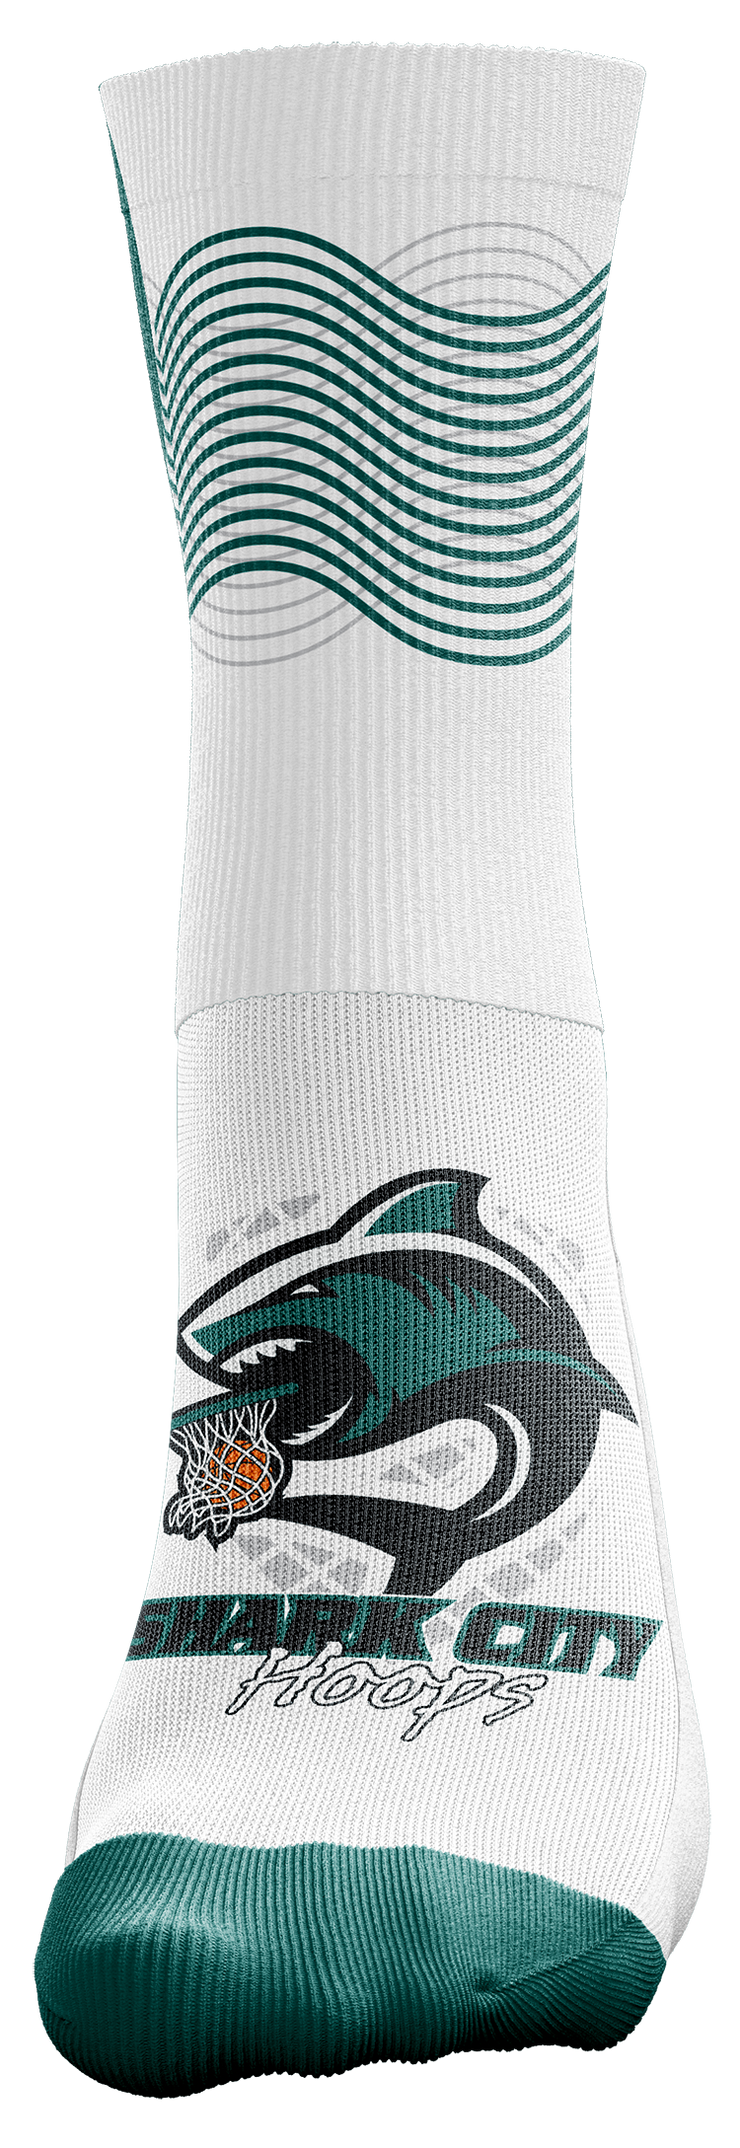 "Image of a single, white Custom Sock from Str8 Sports with a ""Park City Hoops"" logo."